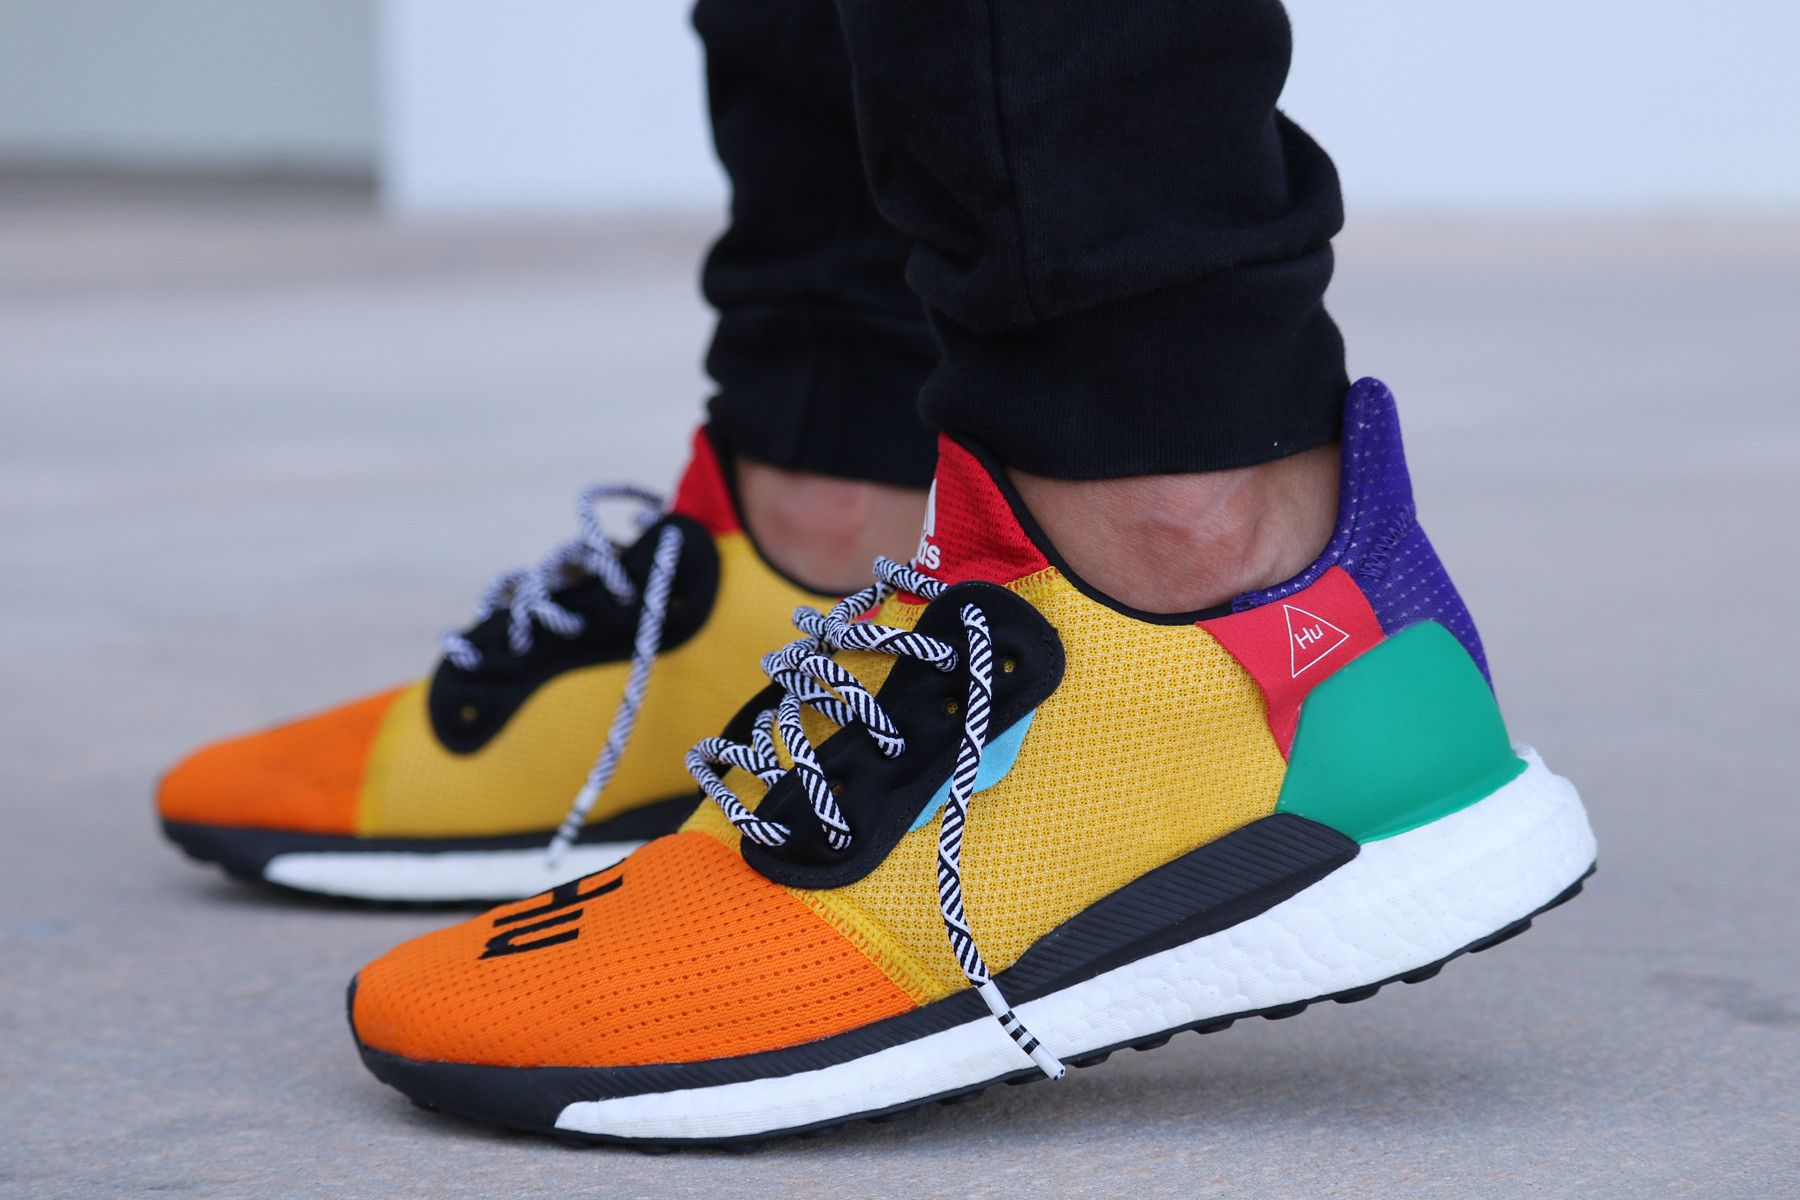 On Glide Look X St Adidas An Pharrell The Foot Hu At Solar CdeoxQrBWE